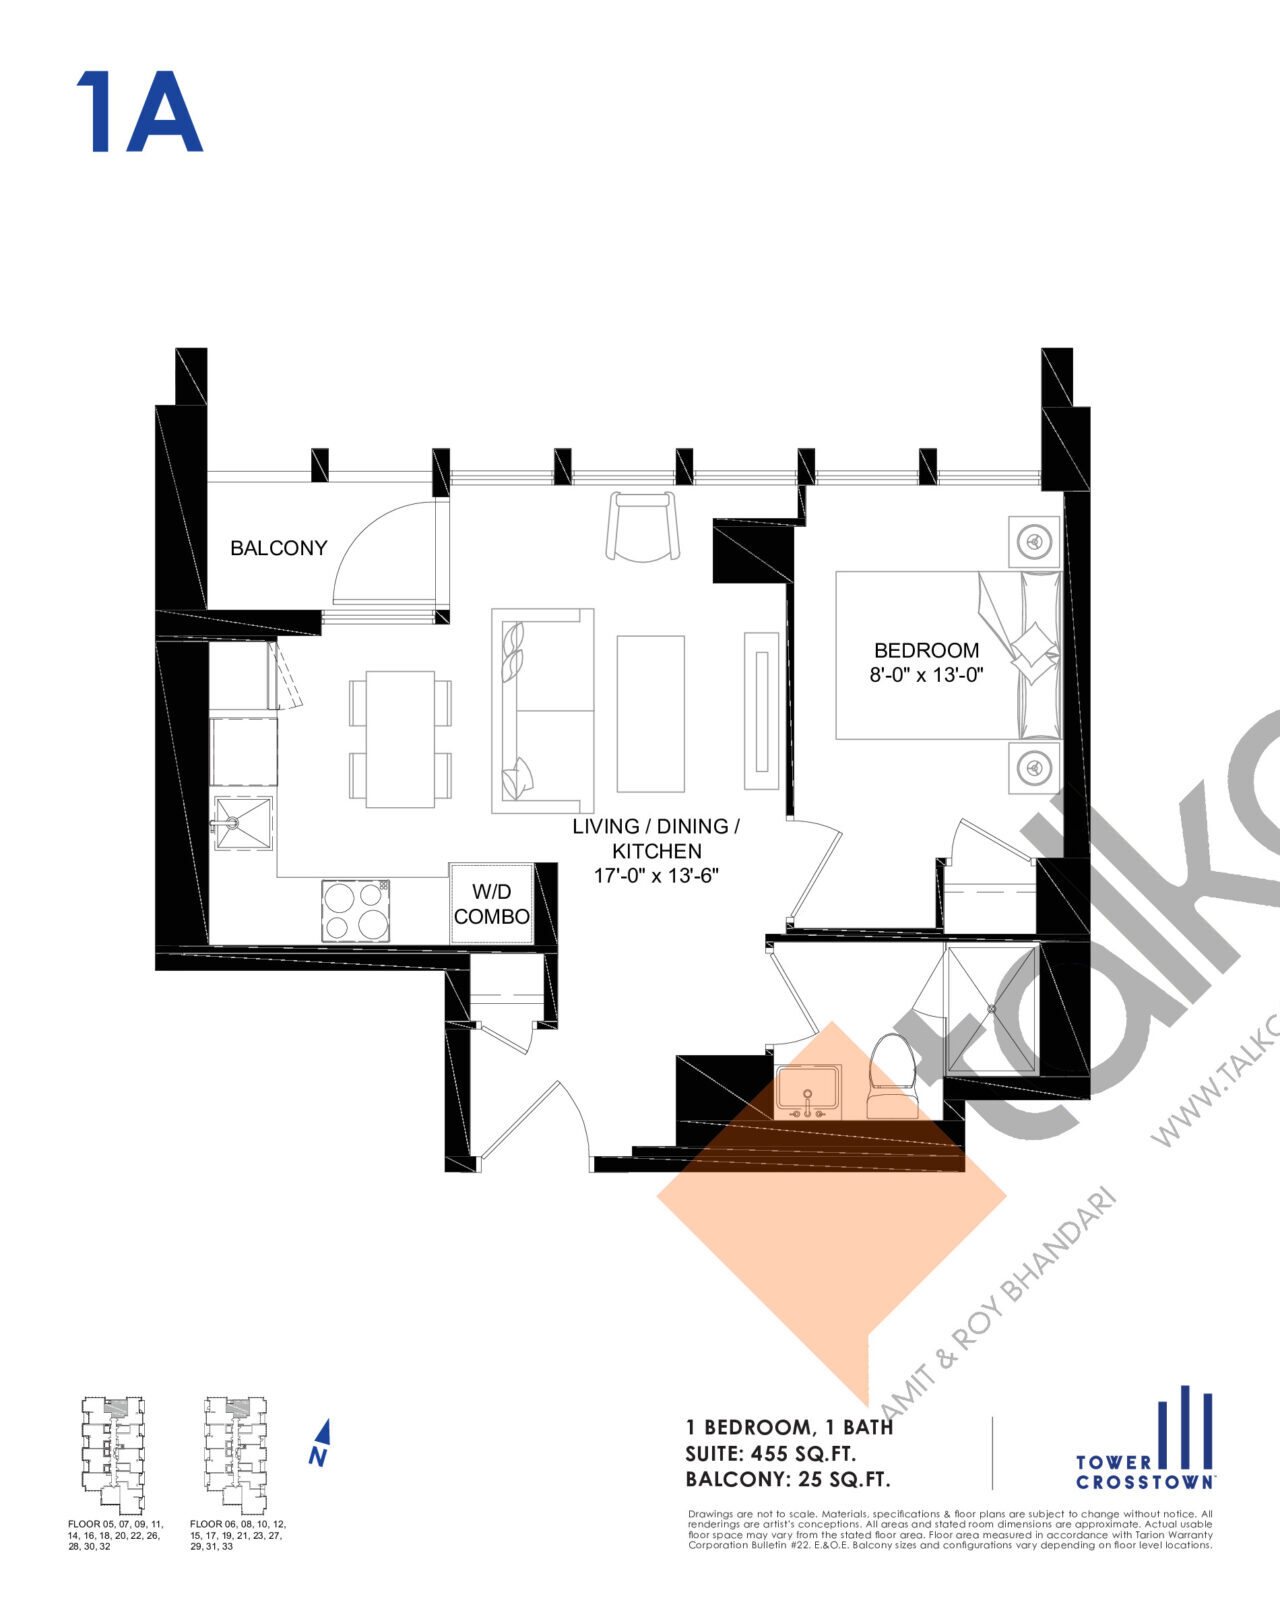 1A Floor Plan at Crosstown Tower 3 Condos - 455 sq.ft